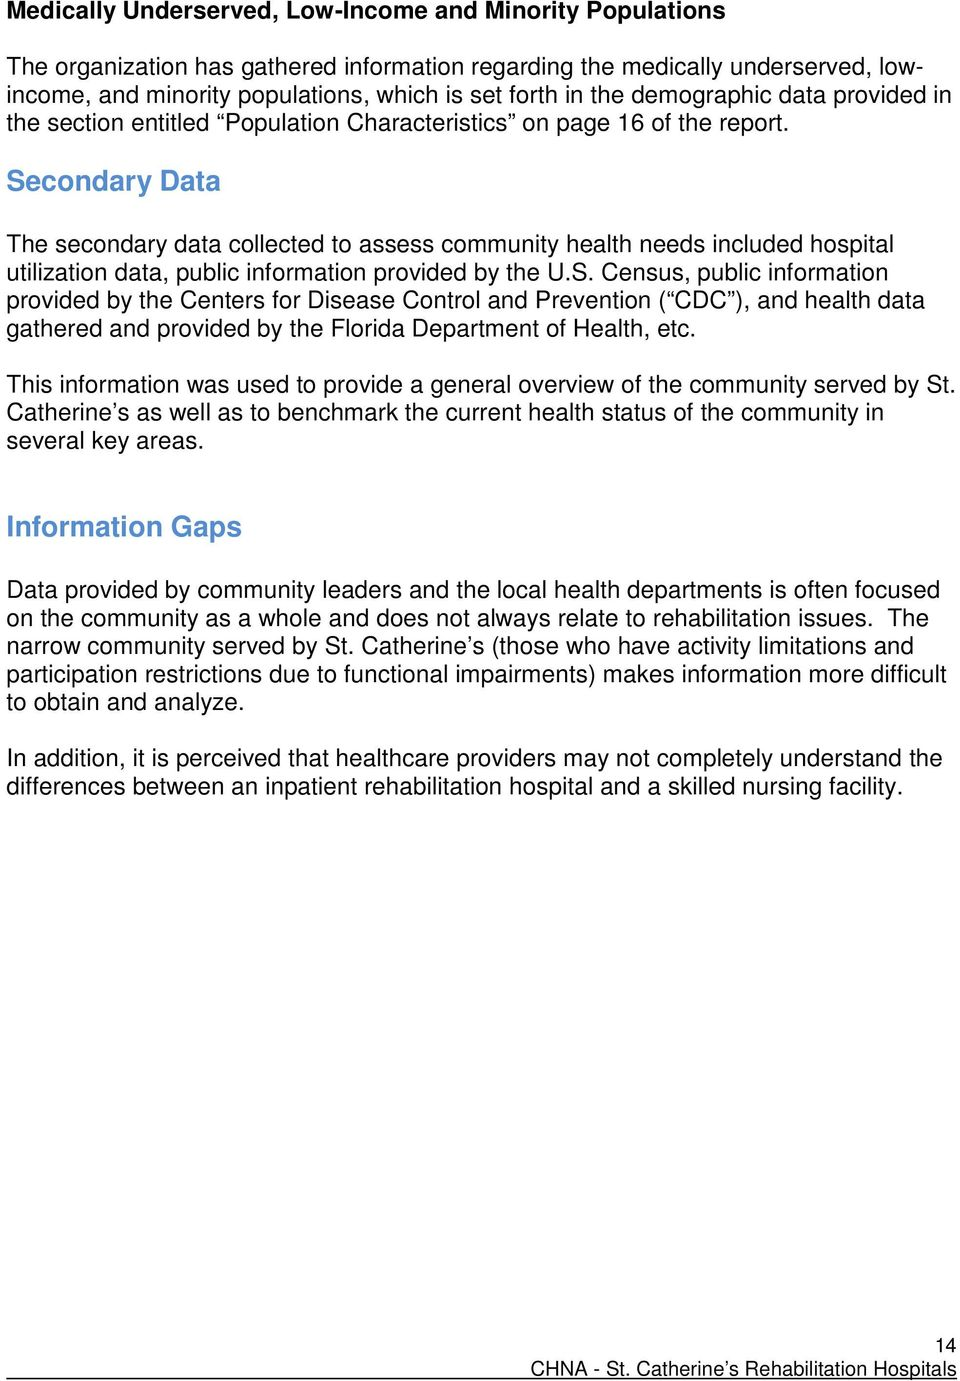 Secondary Data The secondary data collected to assess community health needs included hospital utilization data, public information provided by the U.S. Census, public information provided by the Centers for Disease Control and Prevention ( CDC ), and health data gathered and provided by the Florida Department of Health, etc.